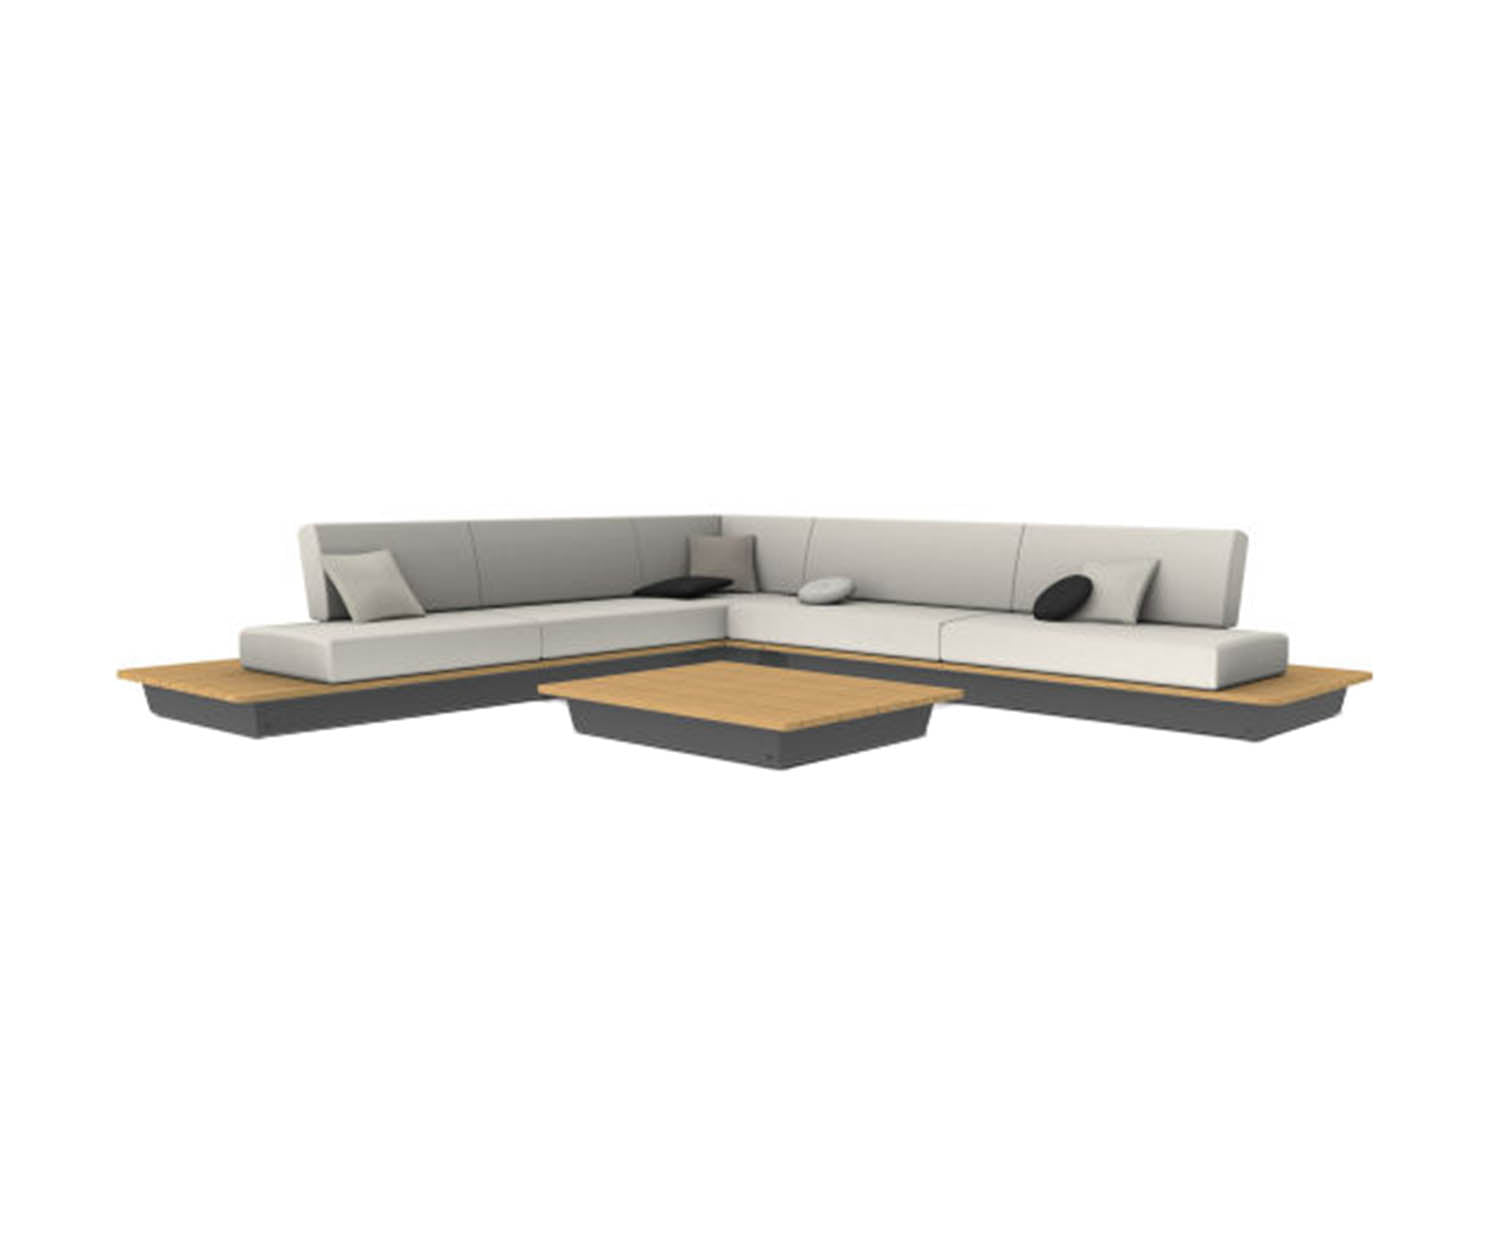 Manutti Air Concept 5 Sectional